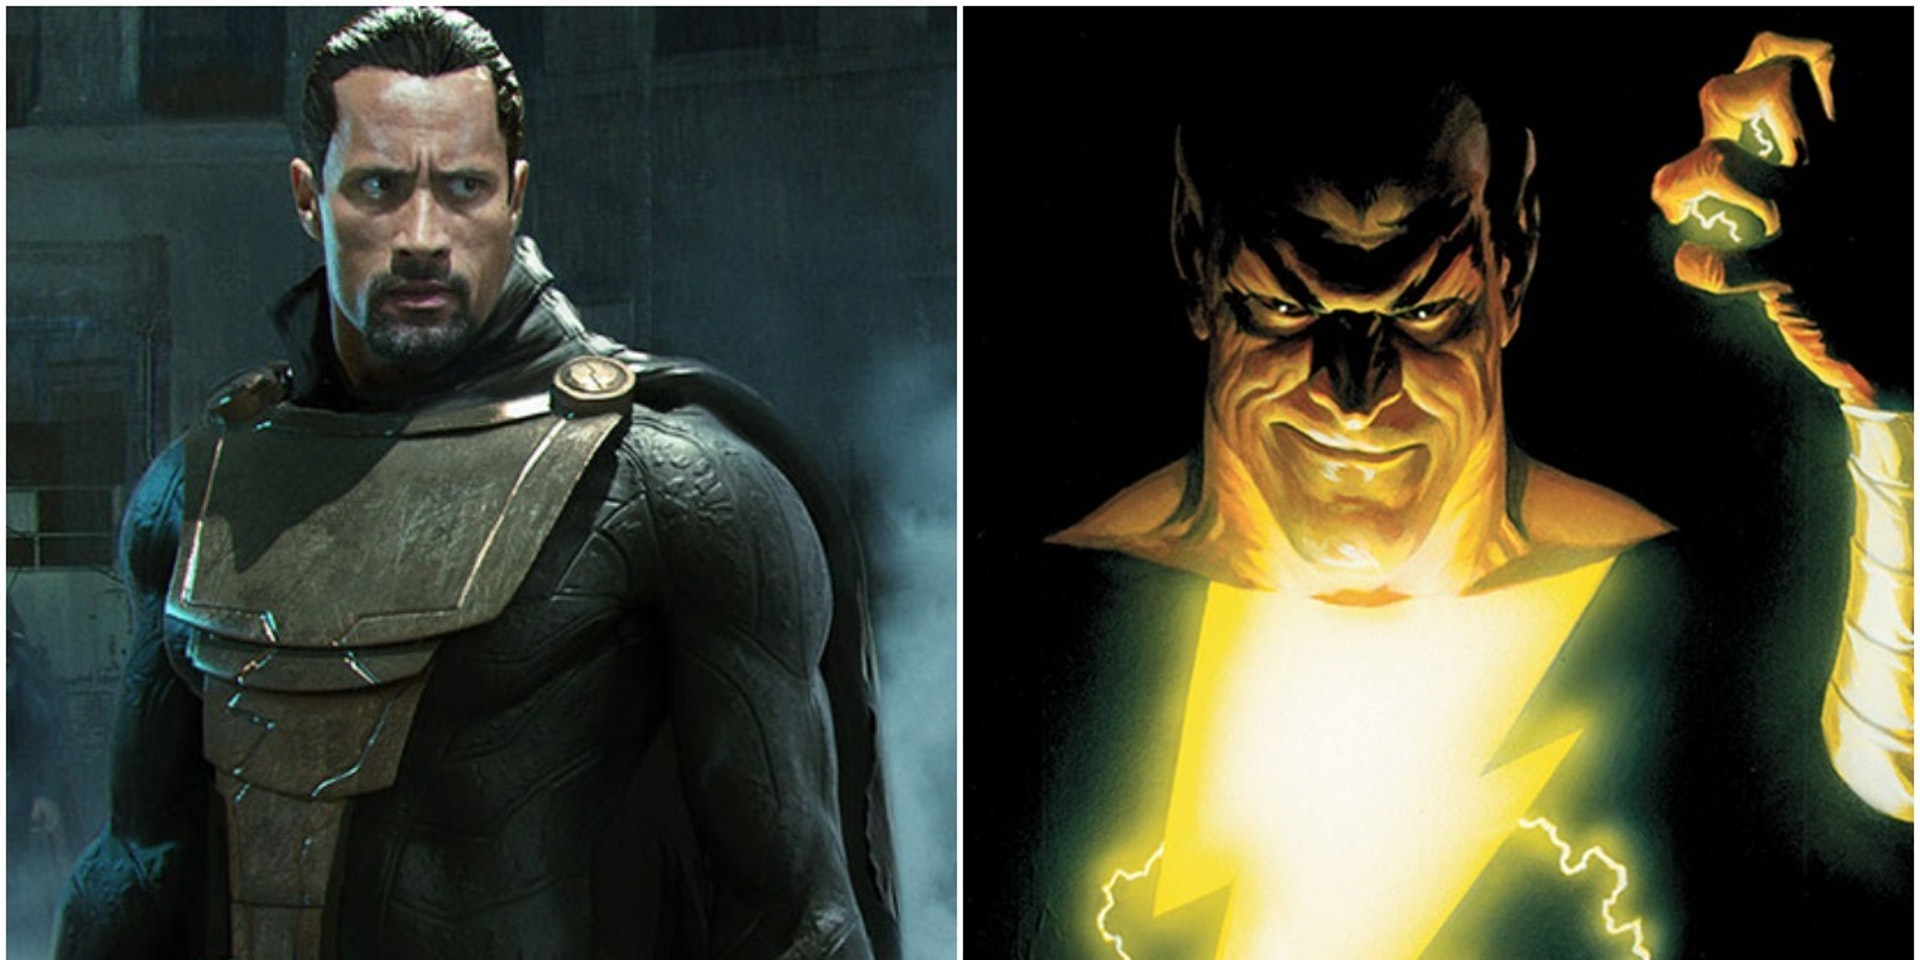 Dwayne Johnson in a fan photoshop of the actor as DC's Black Adam villain